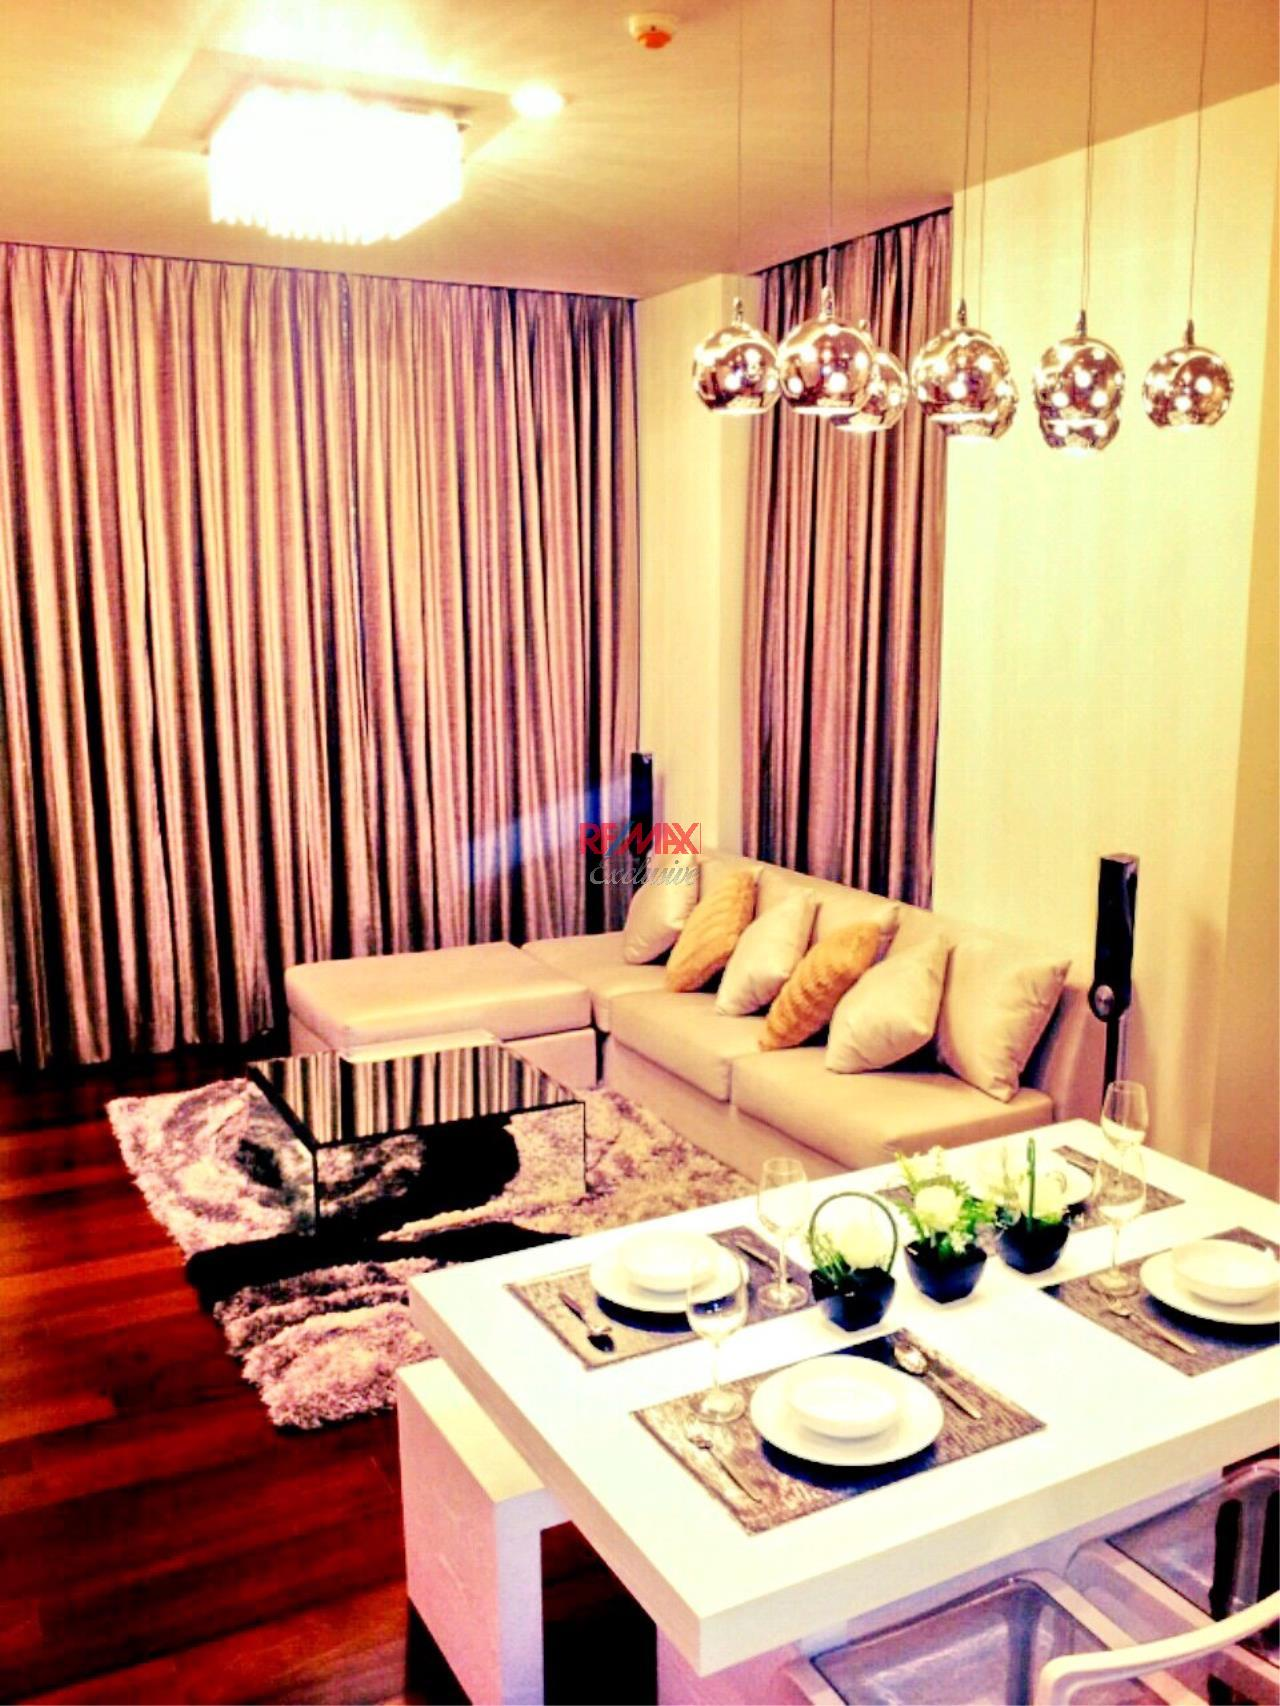 RE/MAX Exclusive Agency's Quattro By Sansiri 2 Bedrooms, 90 Sqm., For Rent and Sale!! 3